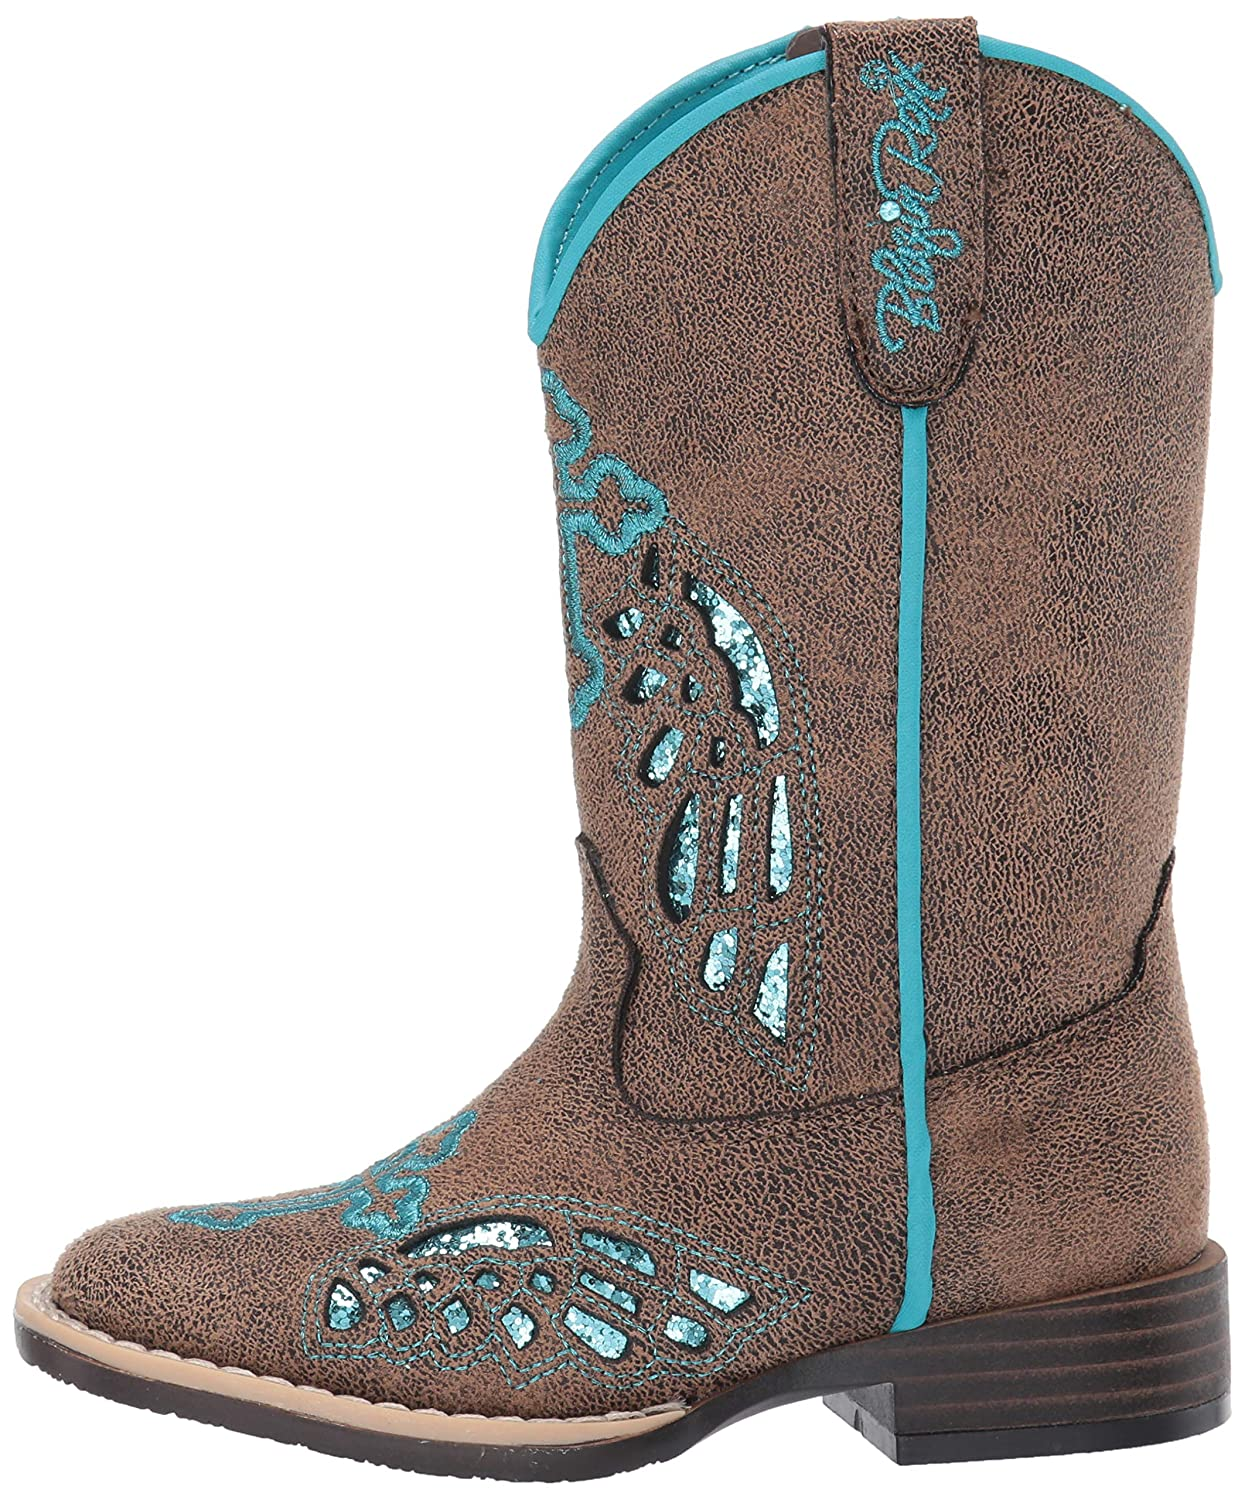 c22160bf4d22 Amazon.com | M&F Western Kids Baby Girl's Gracie (Toddler/Little Kid) |  Boots